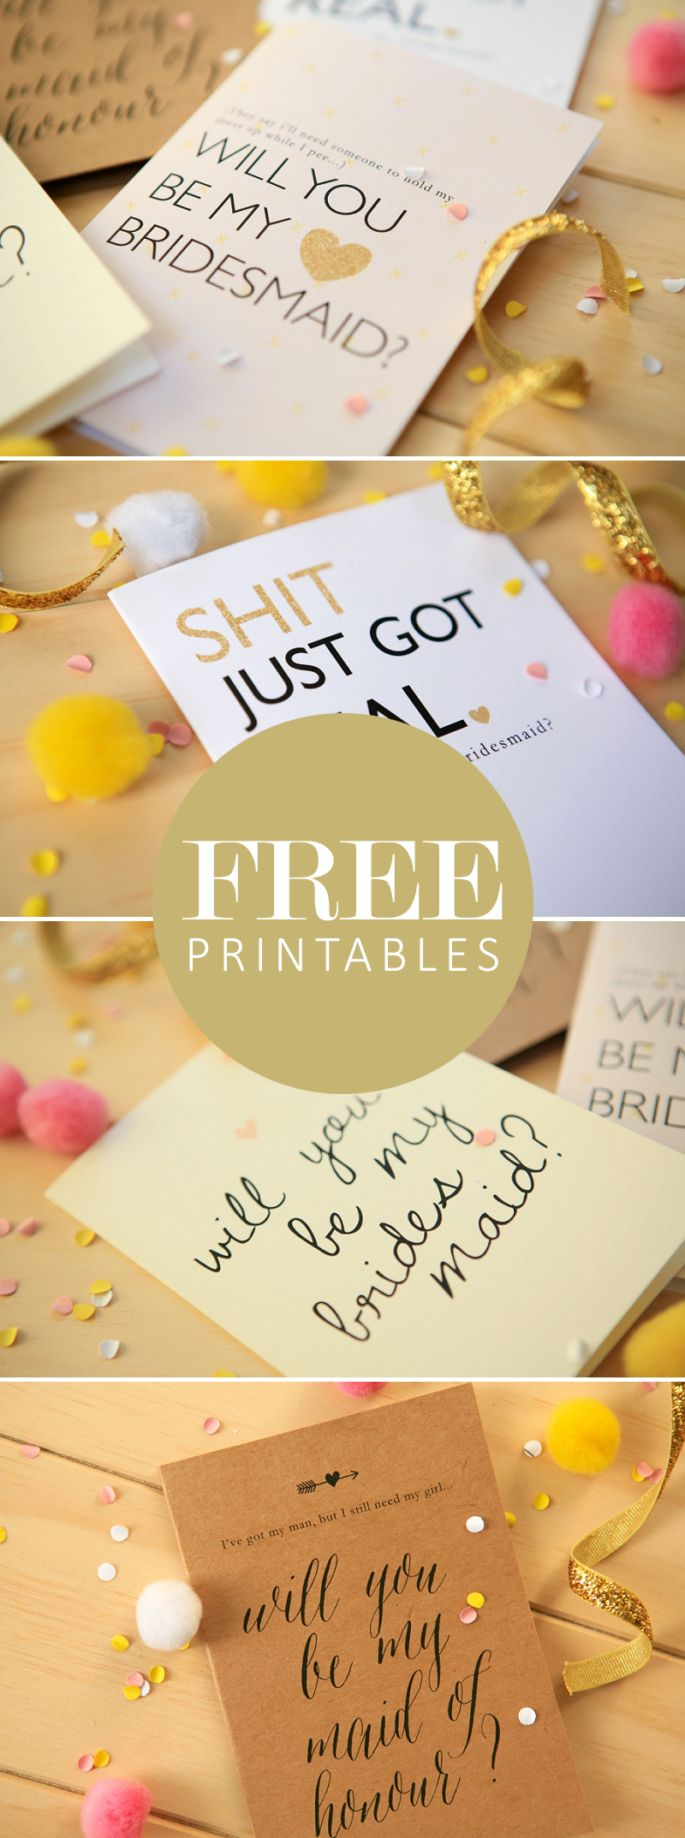 FREE Will You Be My Bridesmaid Printables Exclusive to P&L!